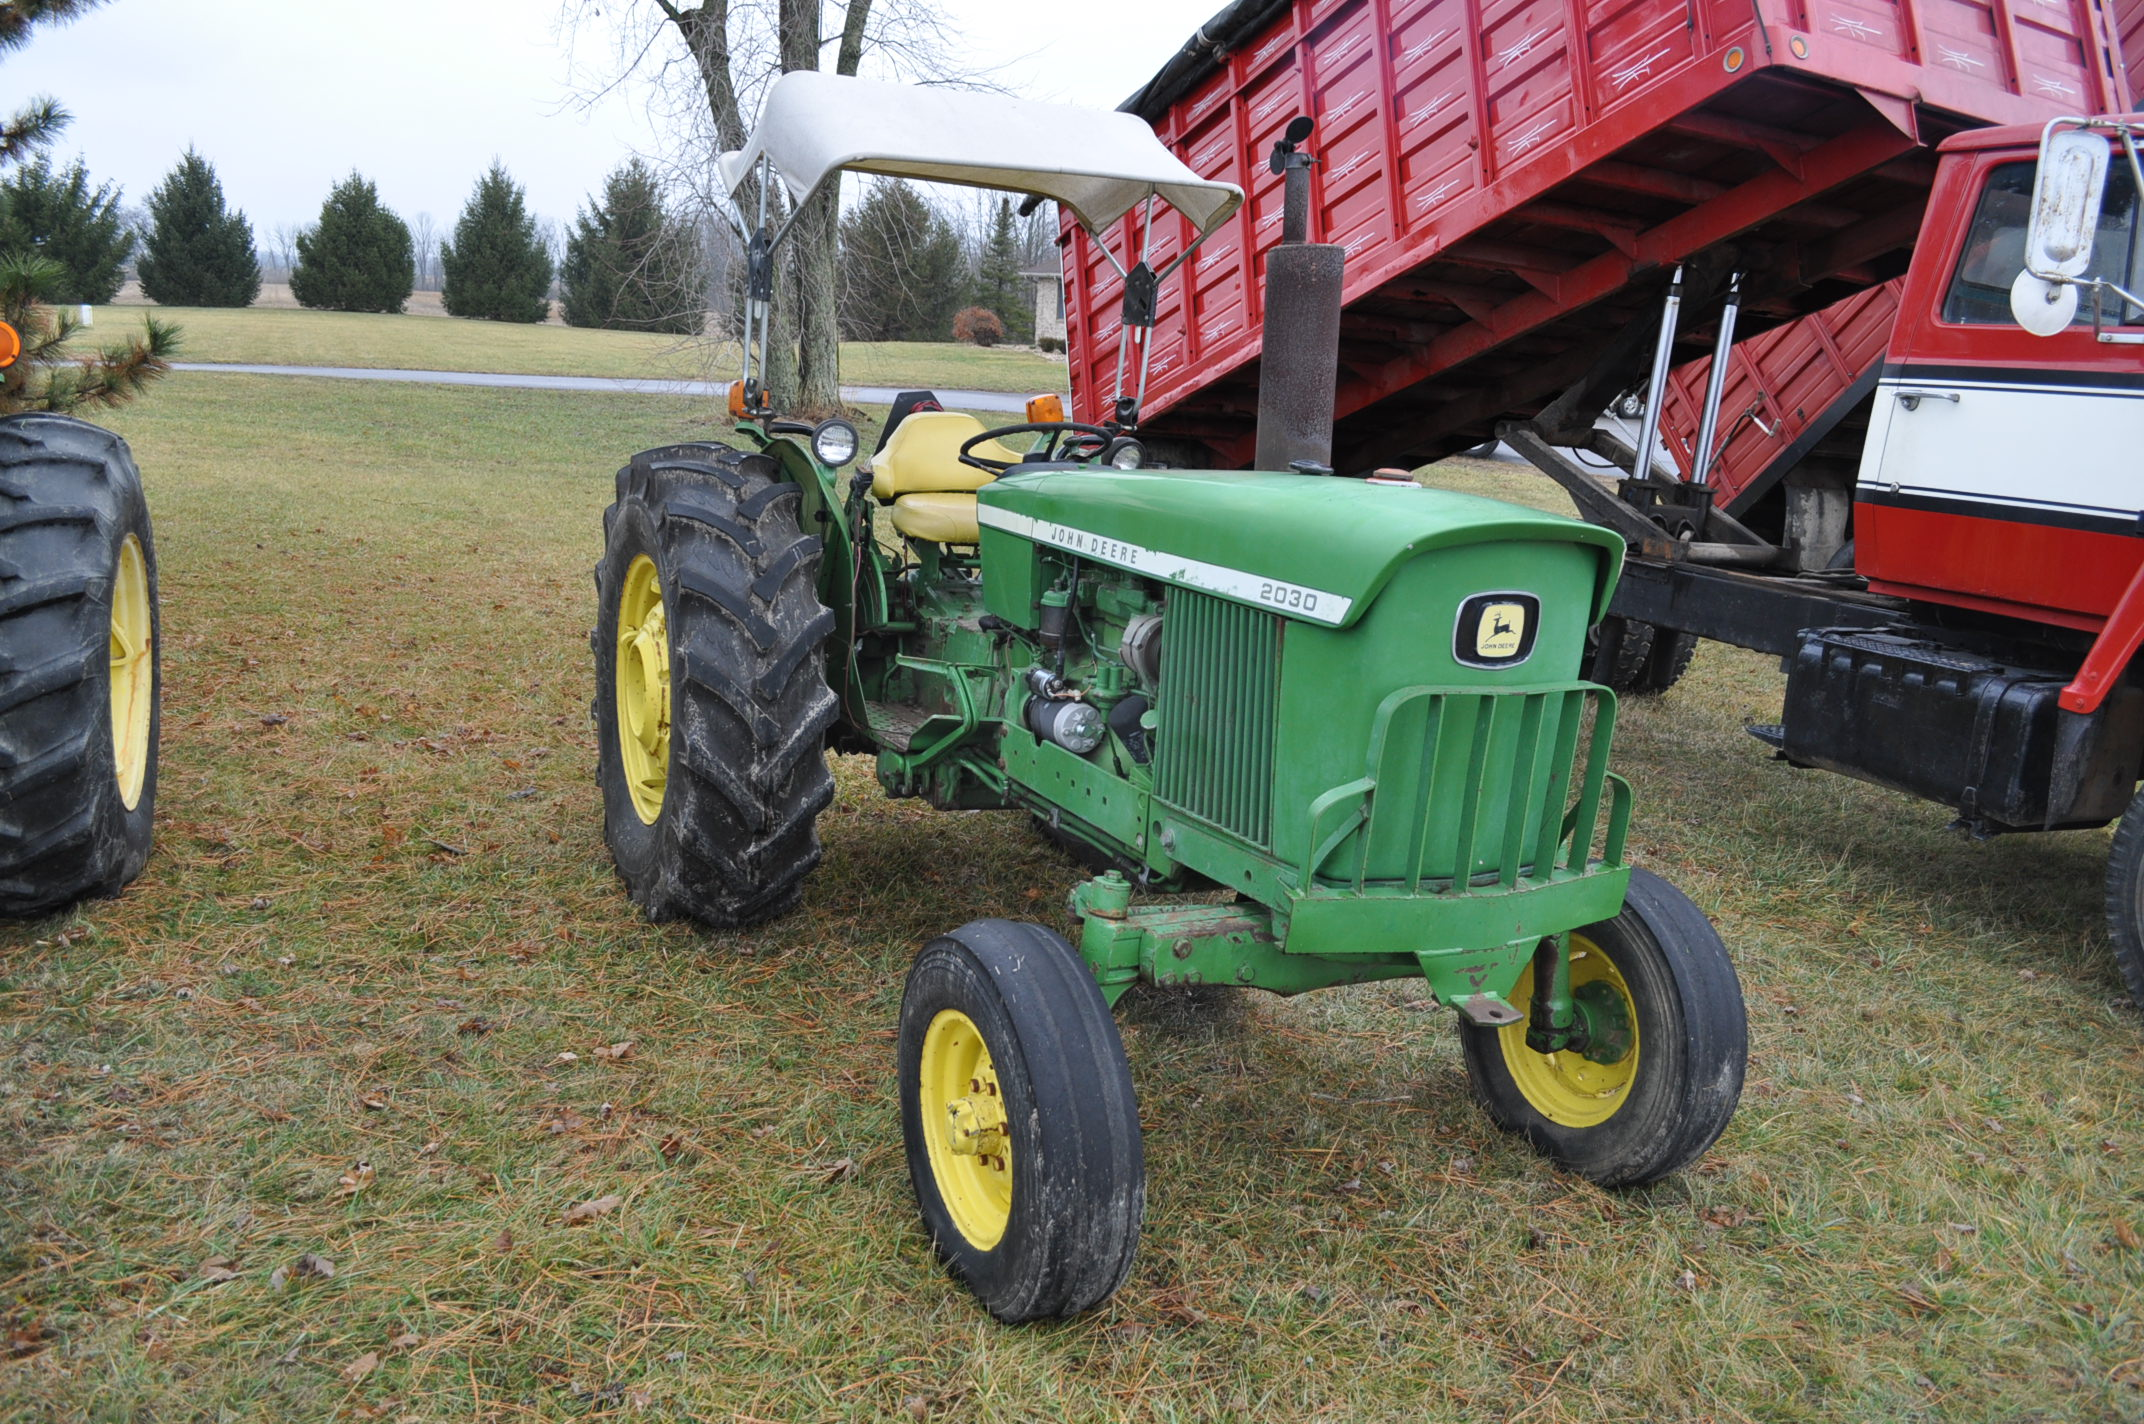 John Deere 2030 tractor, diesel, 16.9-28 rear, 7.5-15 front, canopy, power shuttle, 2 hyd remotes, - Image 4 of 20